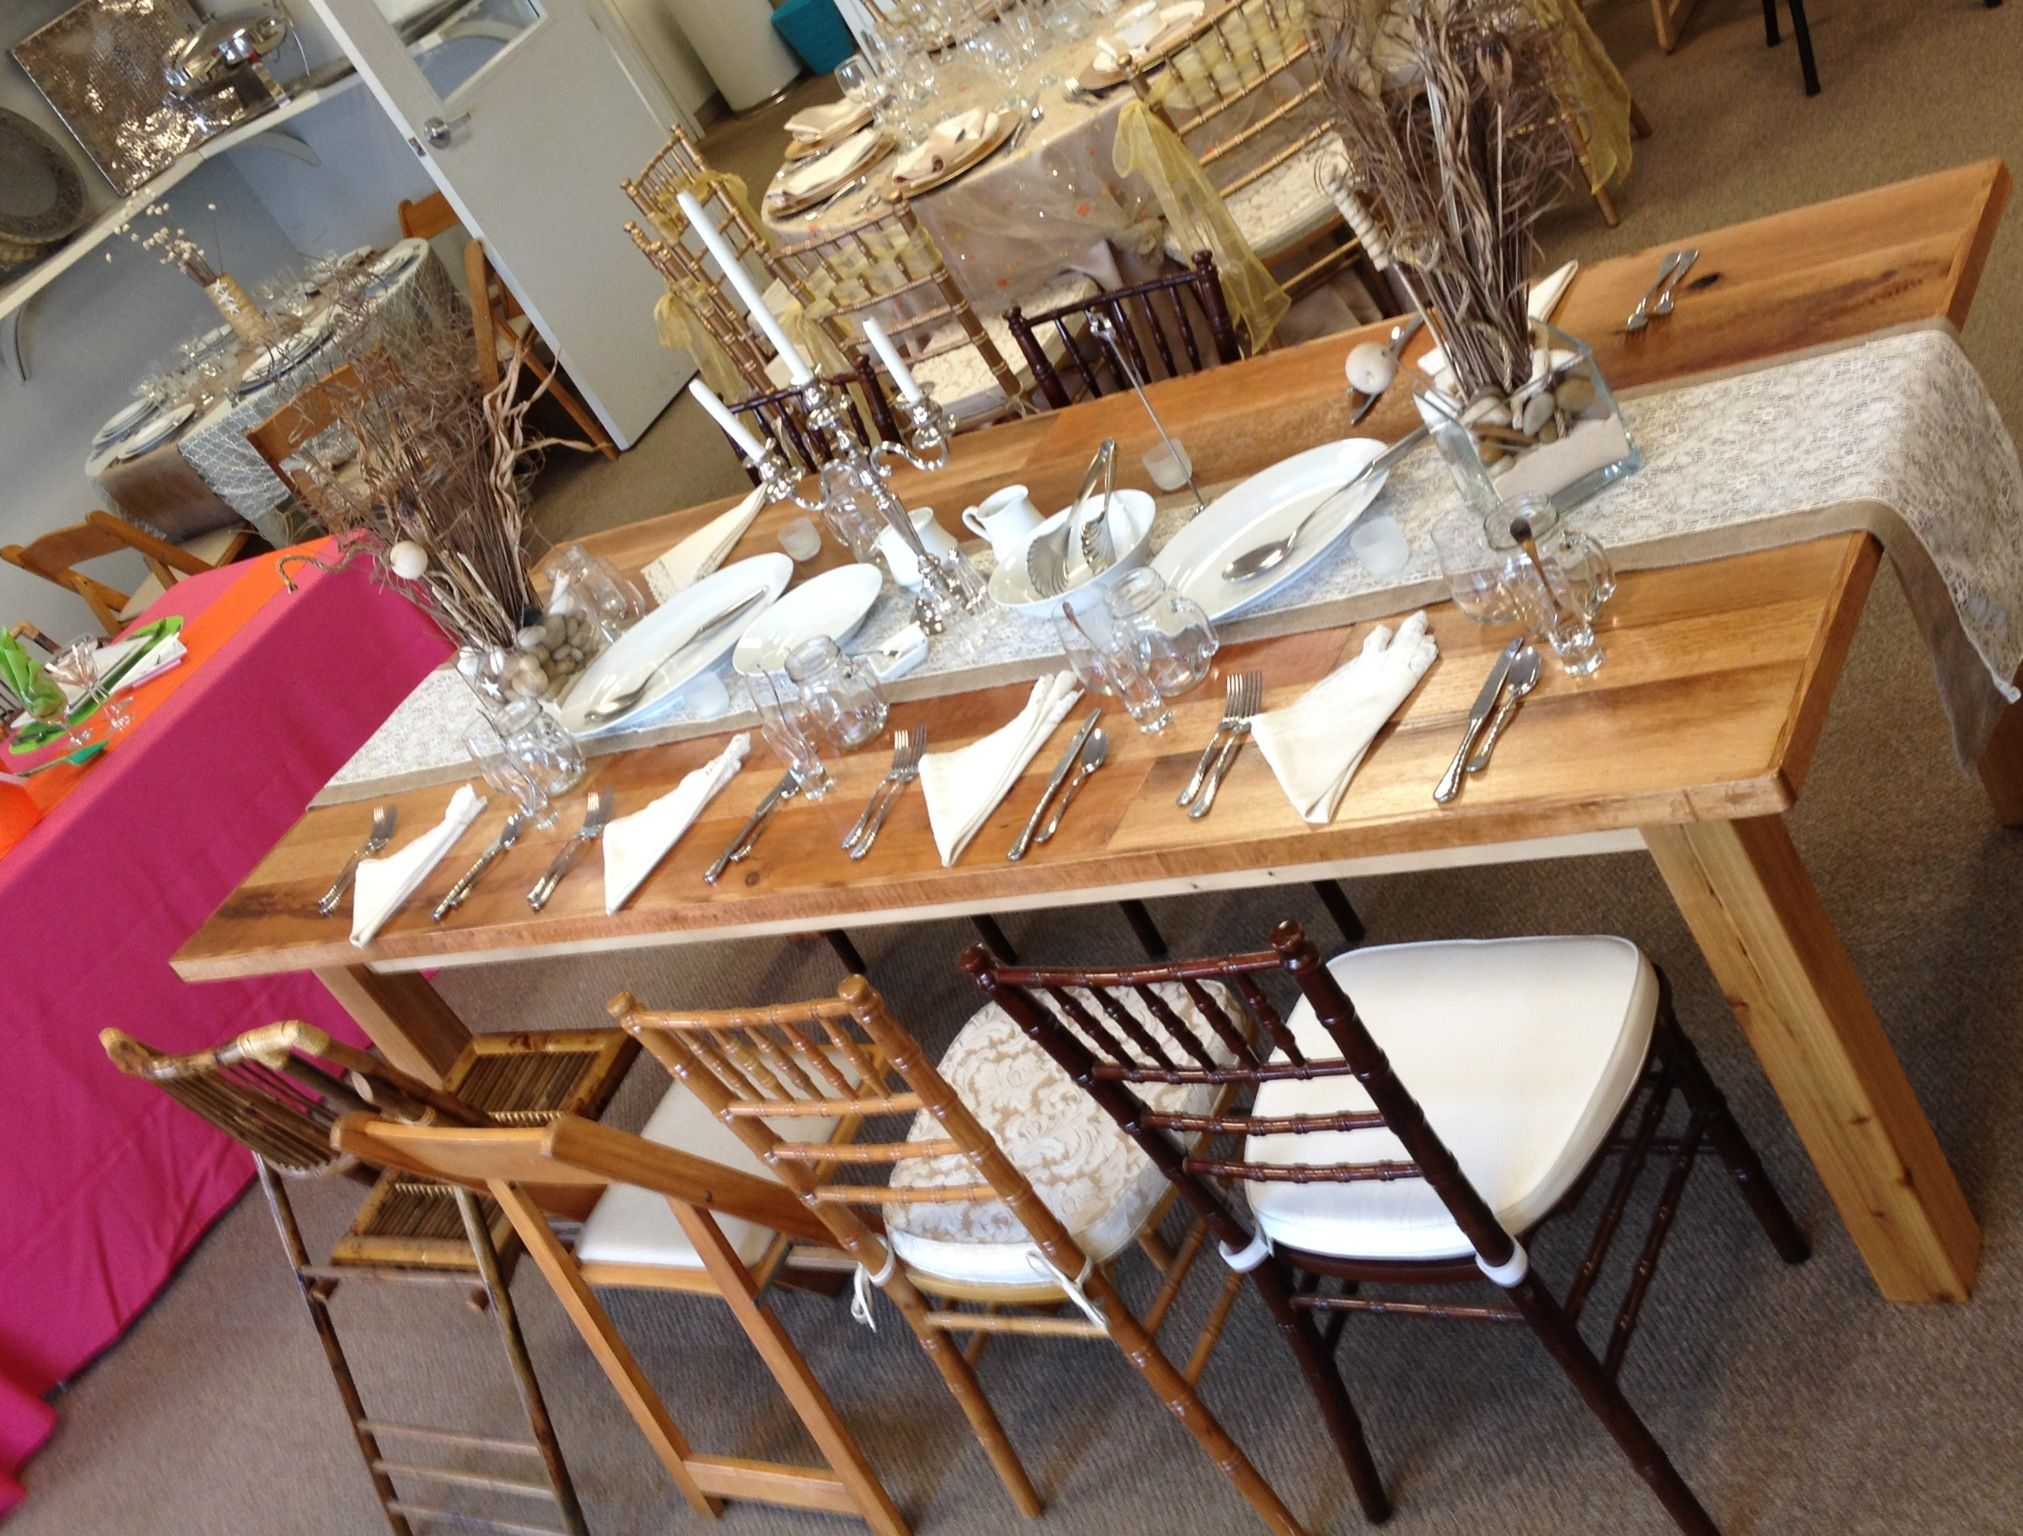 Table And Chair Rentals In Delaware Revolving Parts Online Harvest Tables Rustic Farm Wedding By Www Tentsevents Net